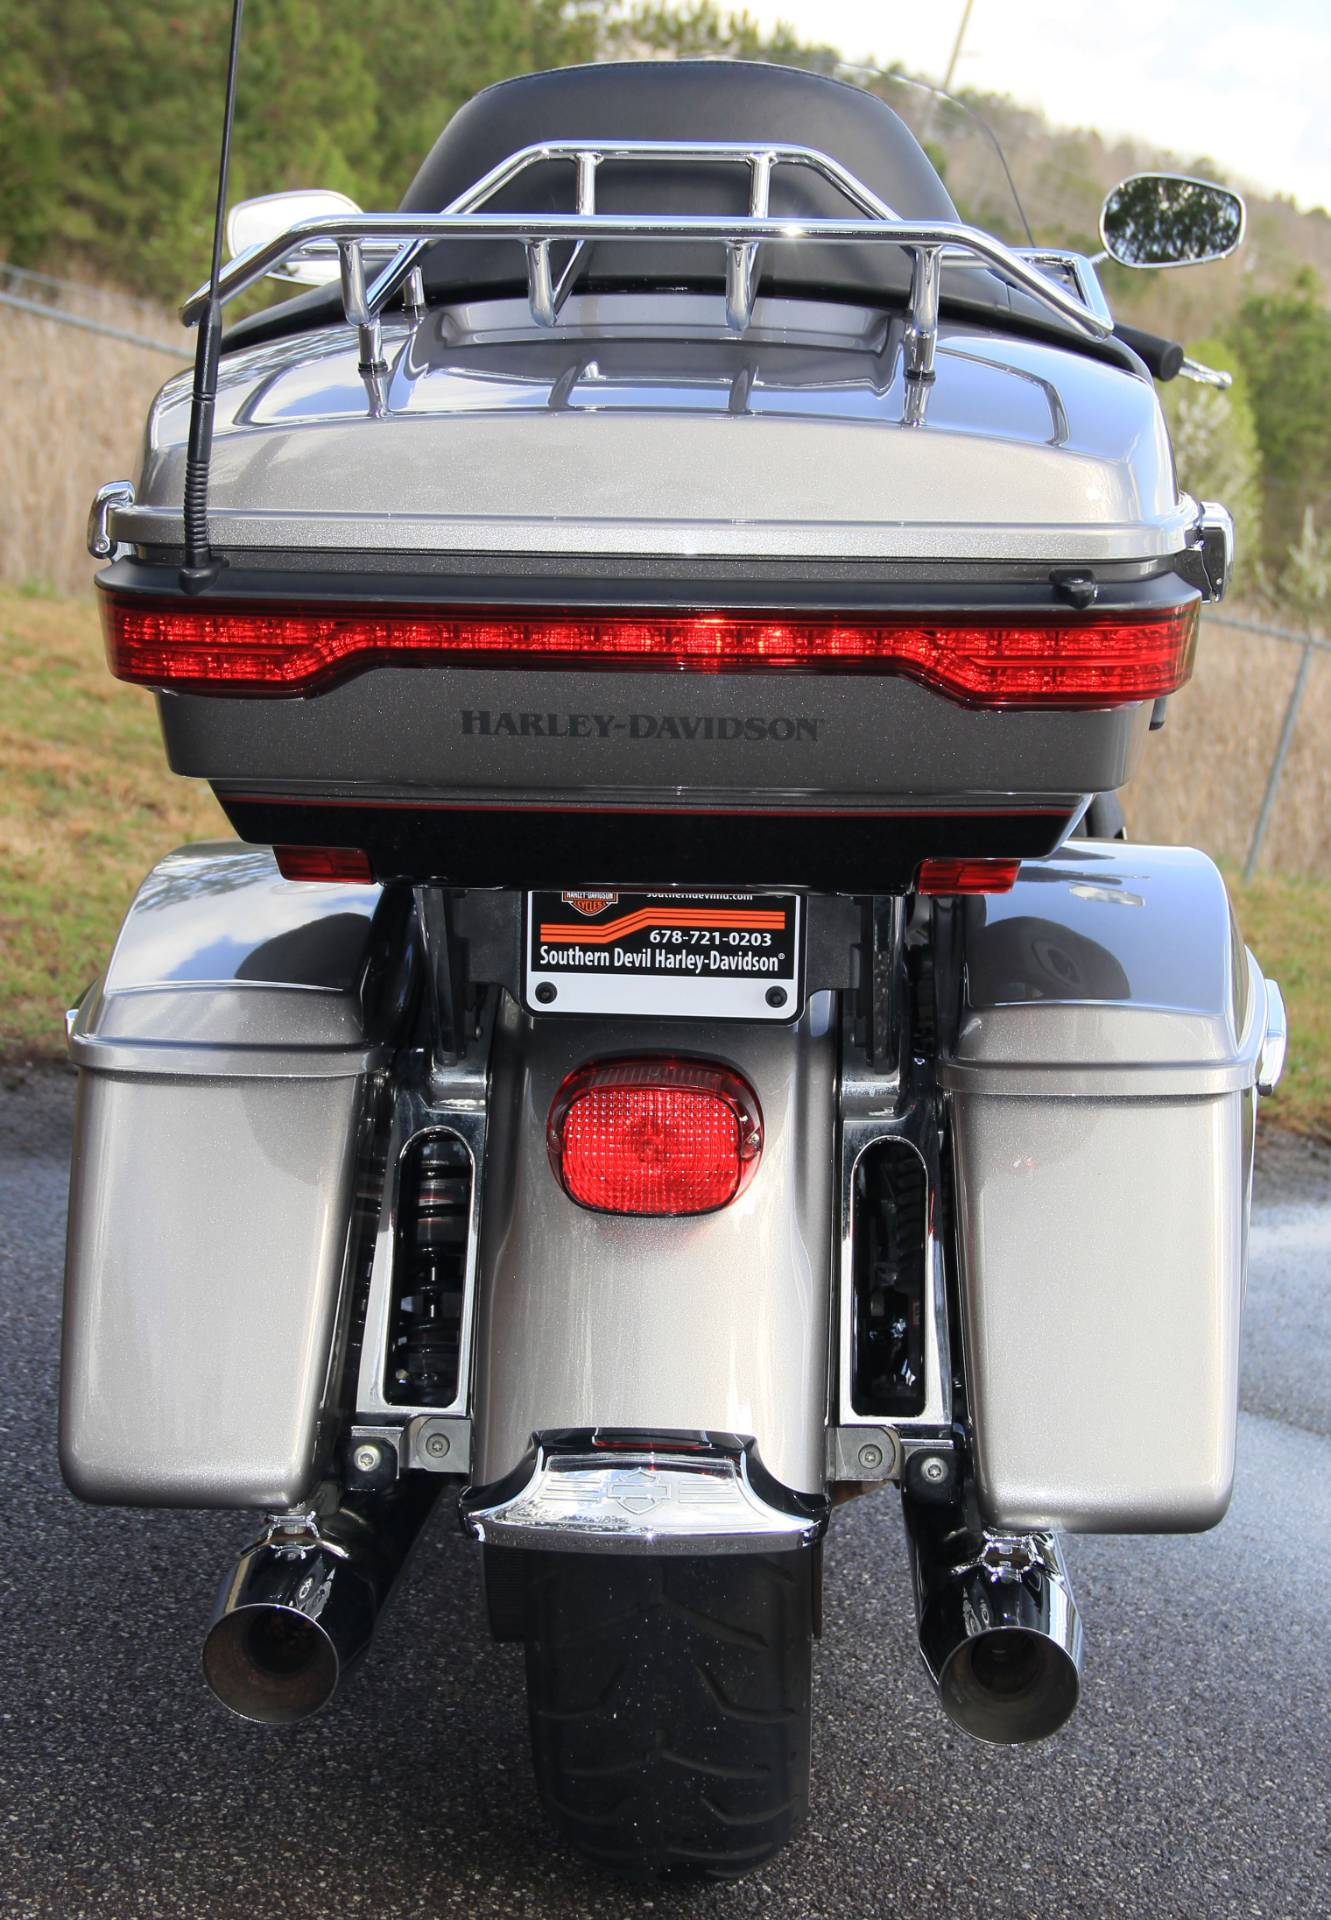 2017 Harley-Davidson Road Glide Ultra in Cartersville, Georgia - Photo 5